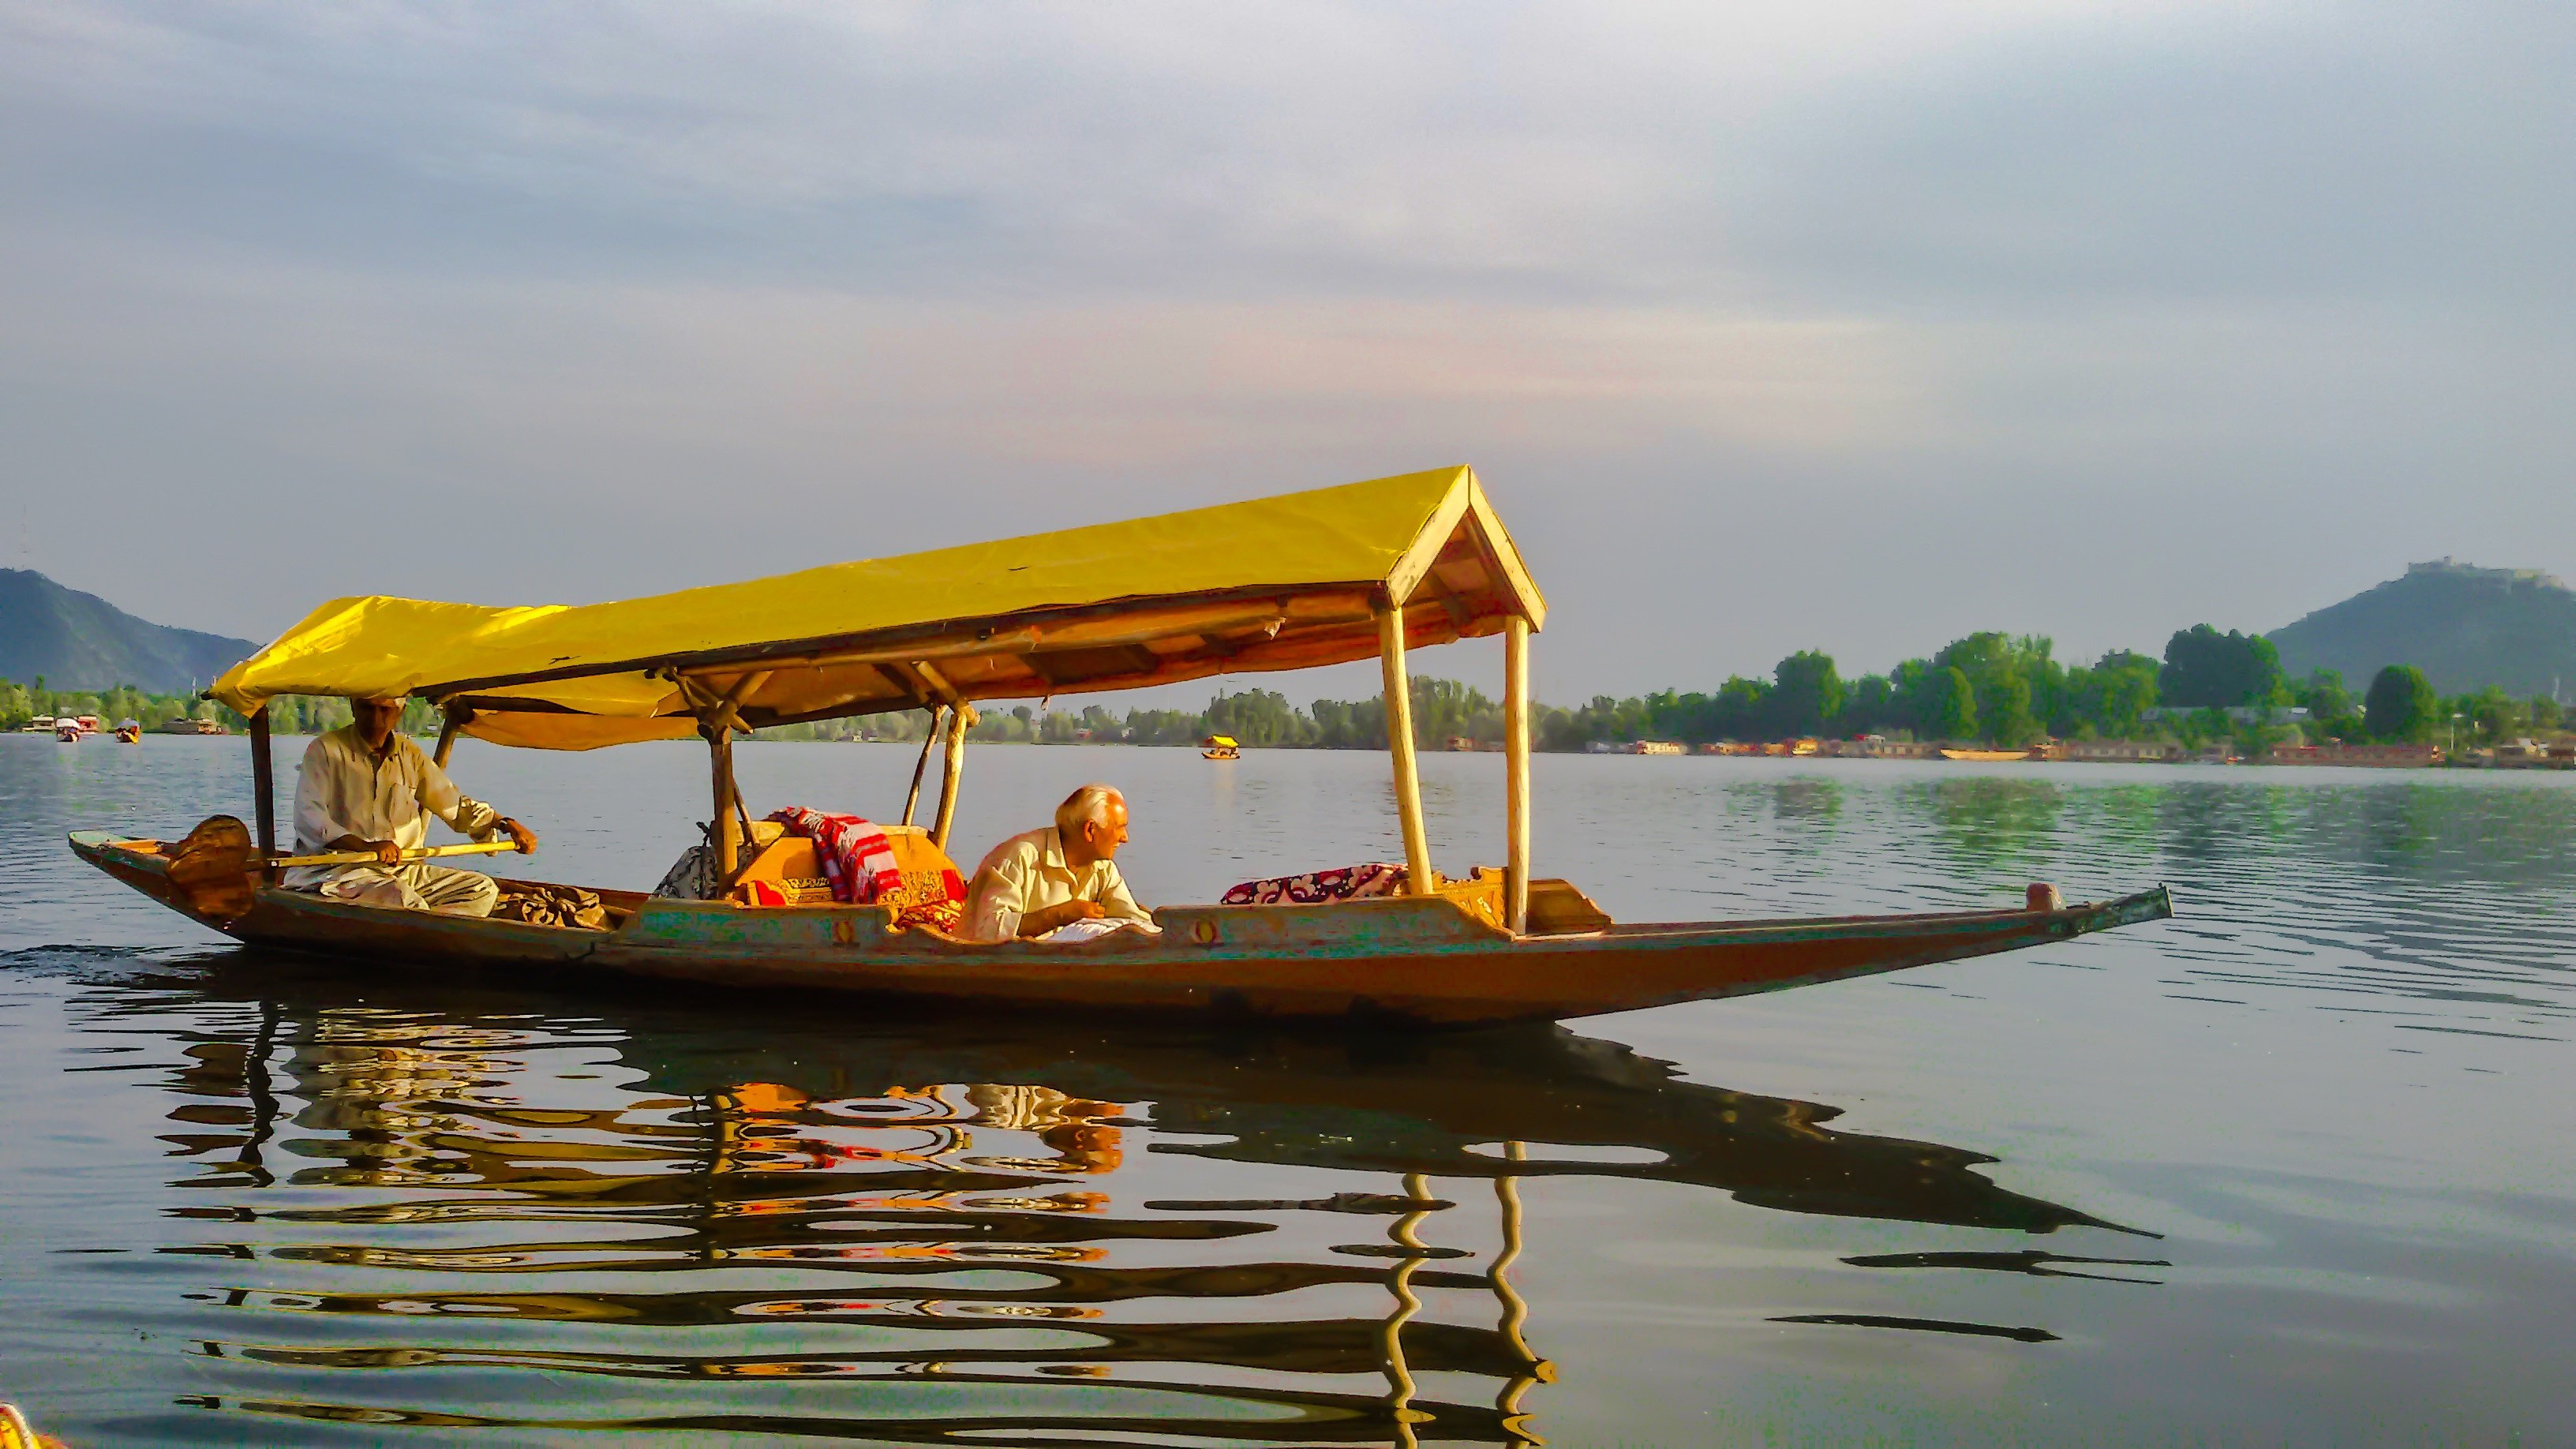 Dal Lake - Normal times for web